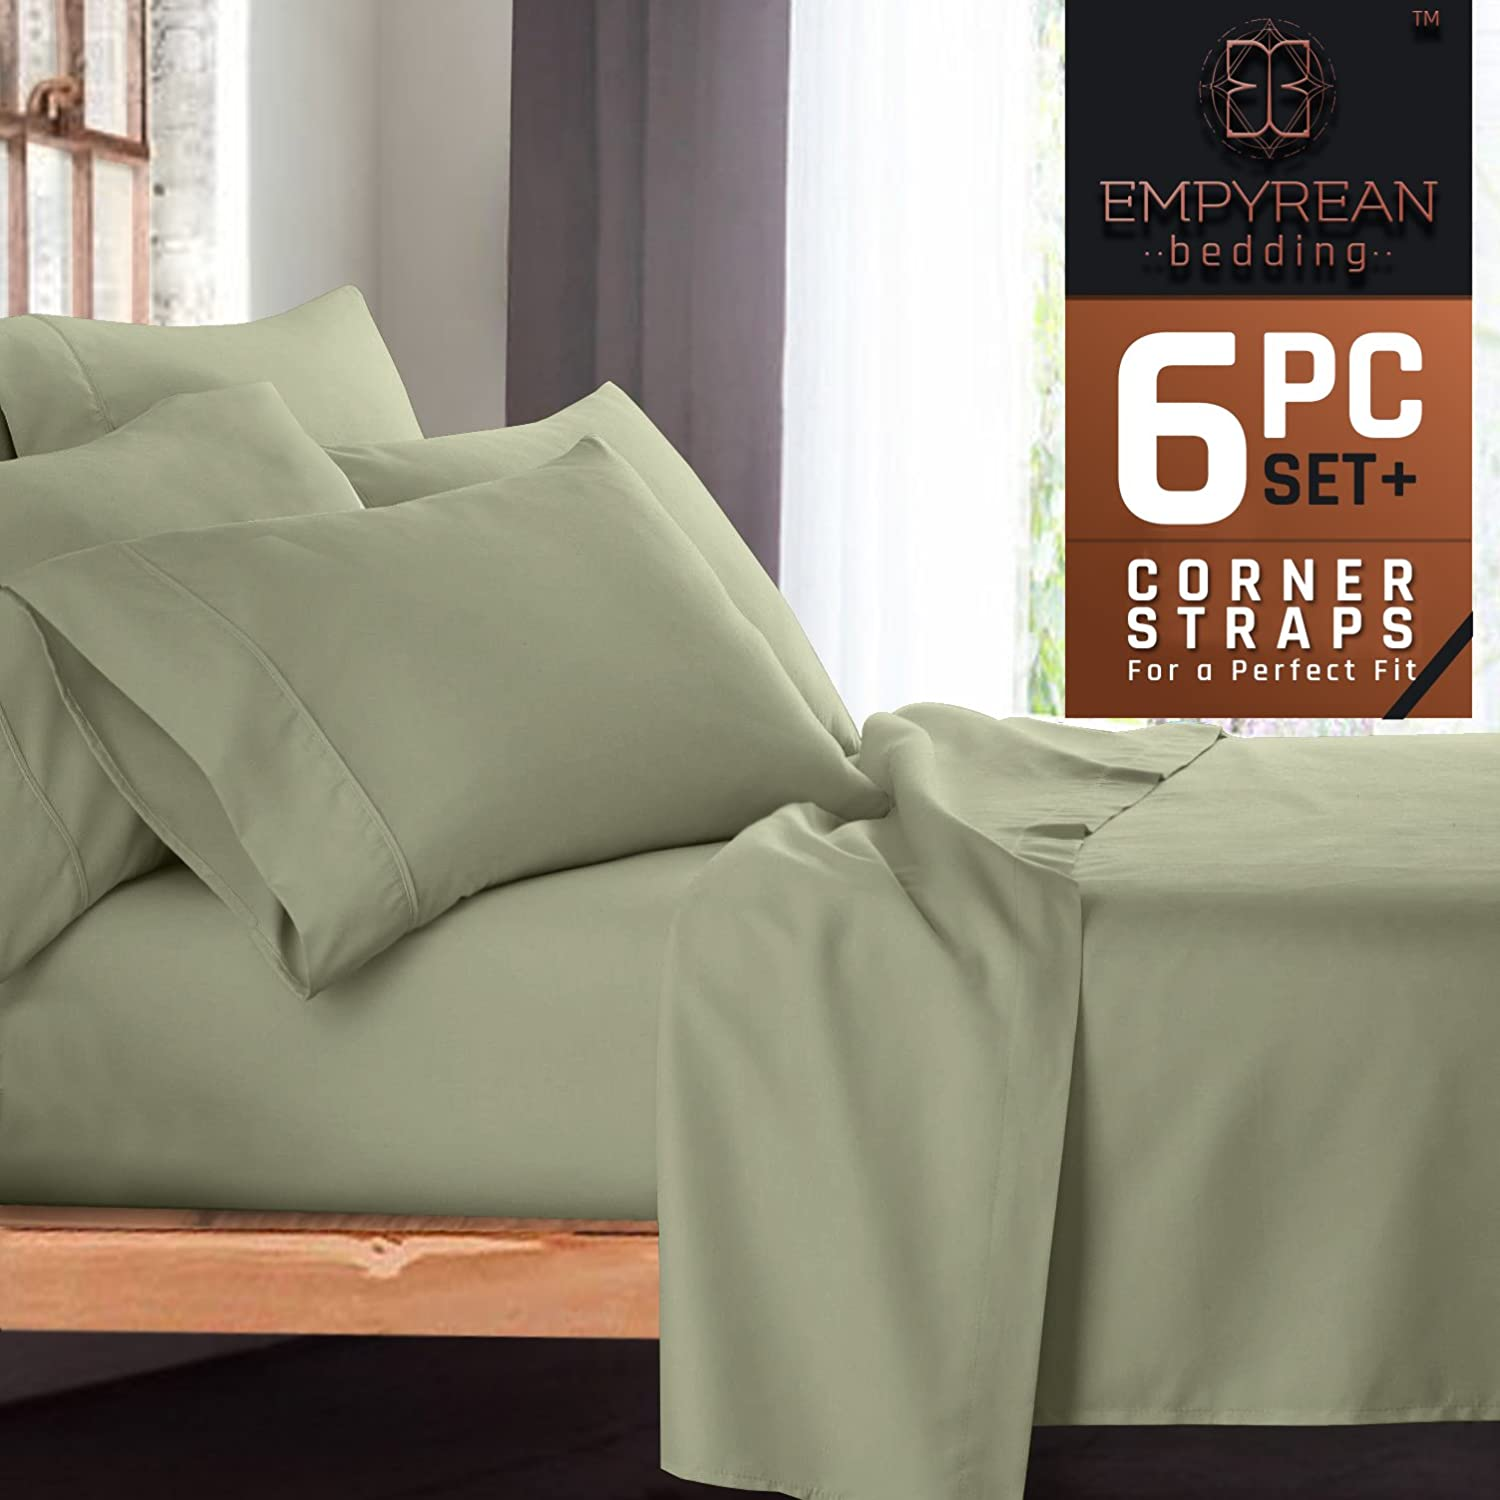 6-Piece Bed Sheet & Pillow Case Set – Luxurious & Soft Queen Size Linen, Extra Deep Pocket Super Fit Fitted Sage Olive Green Sheets